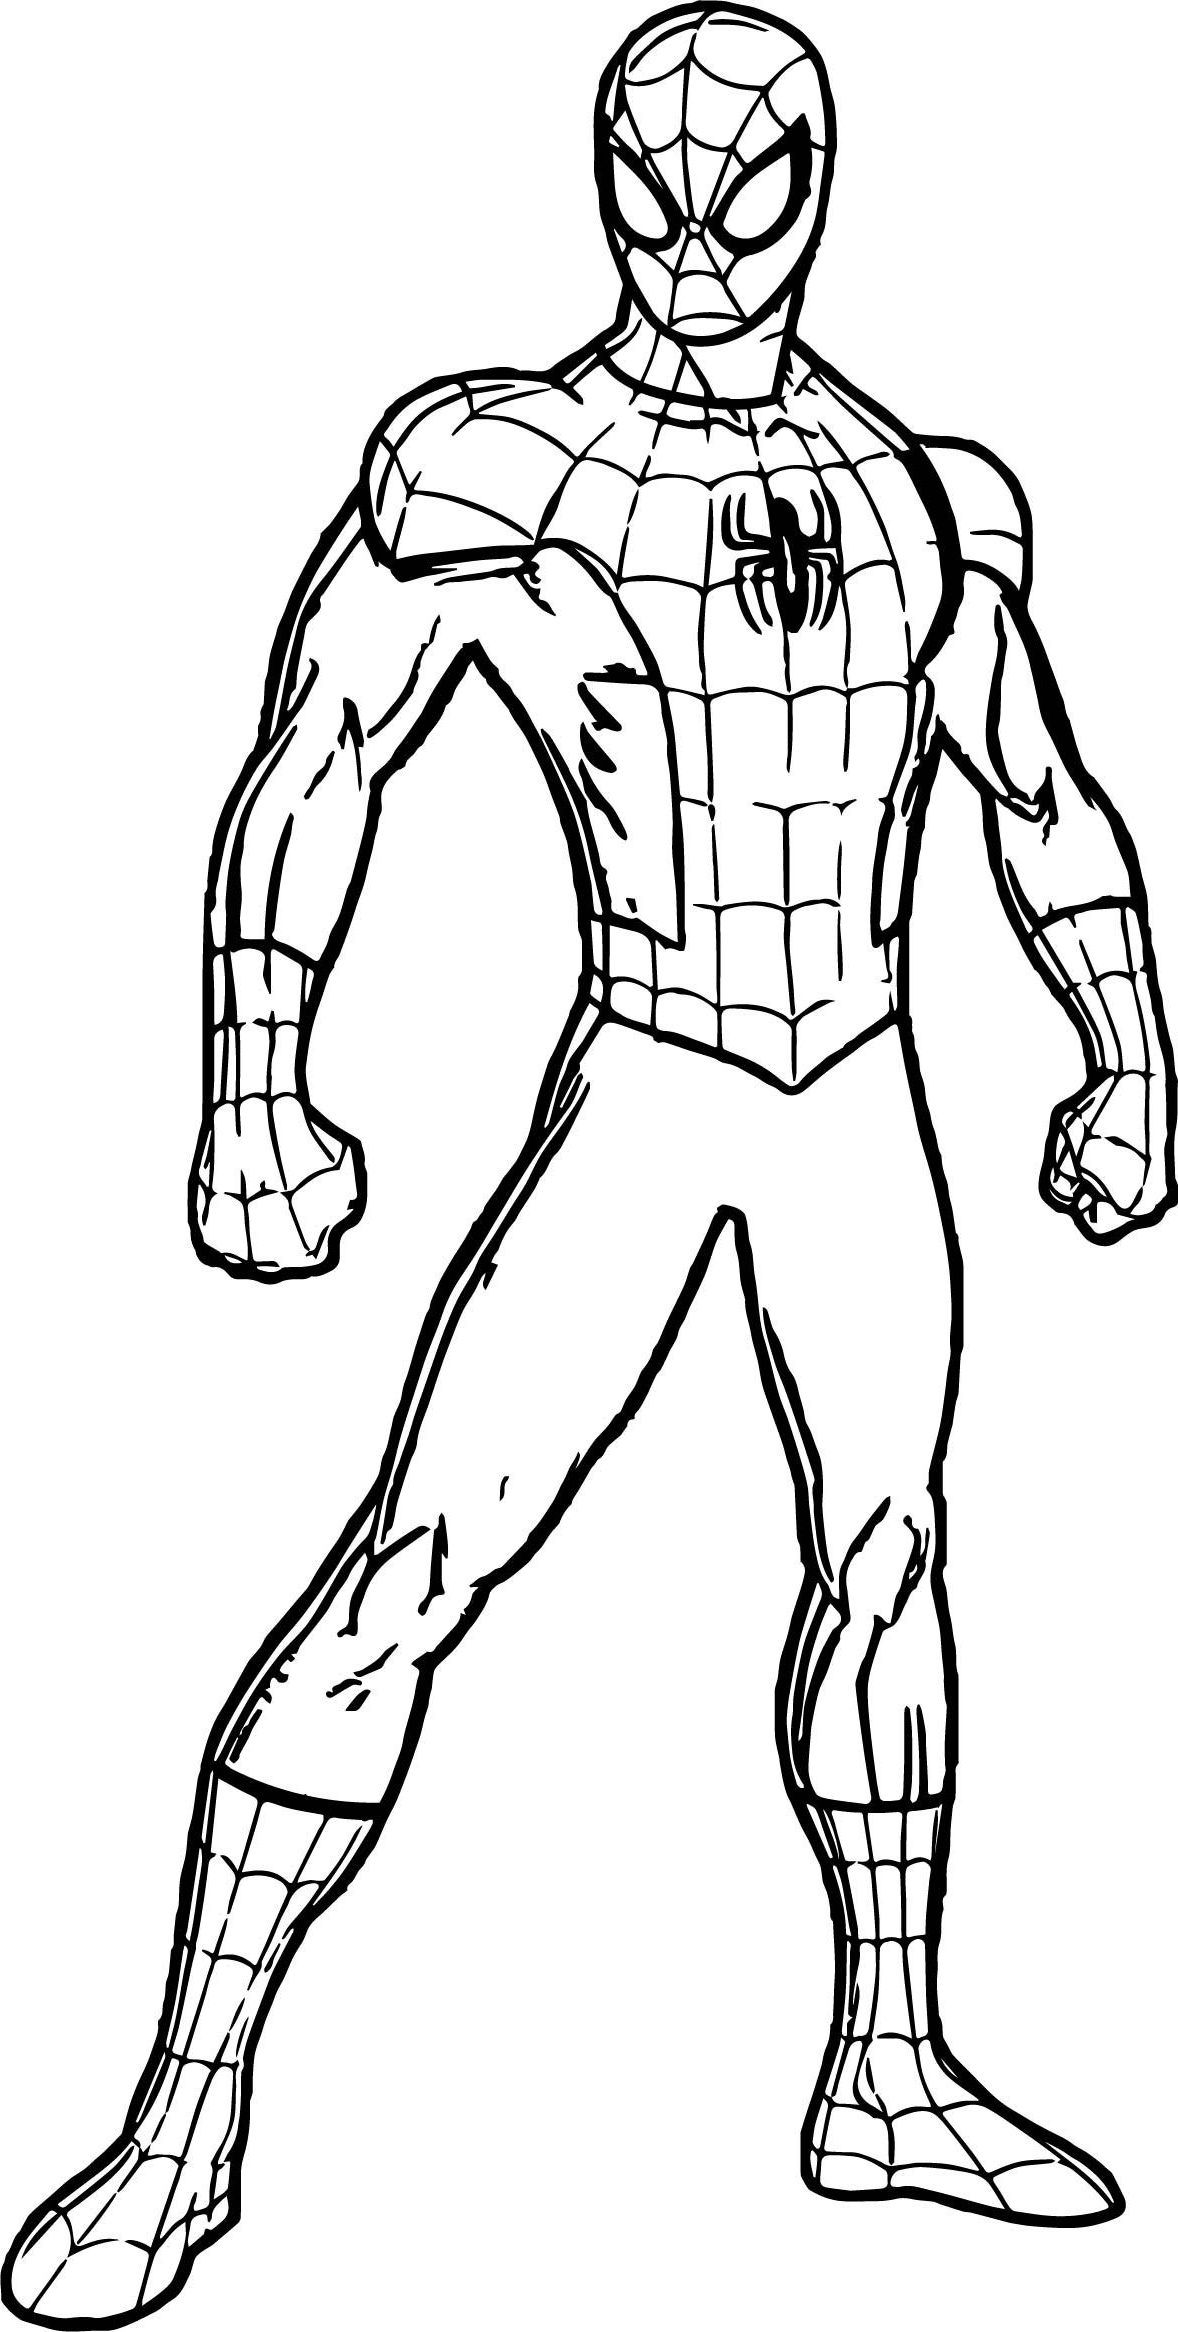 Spiderman Suit Coloring Page In